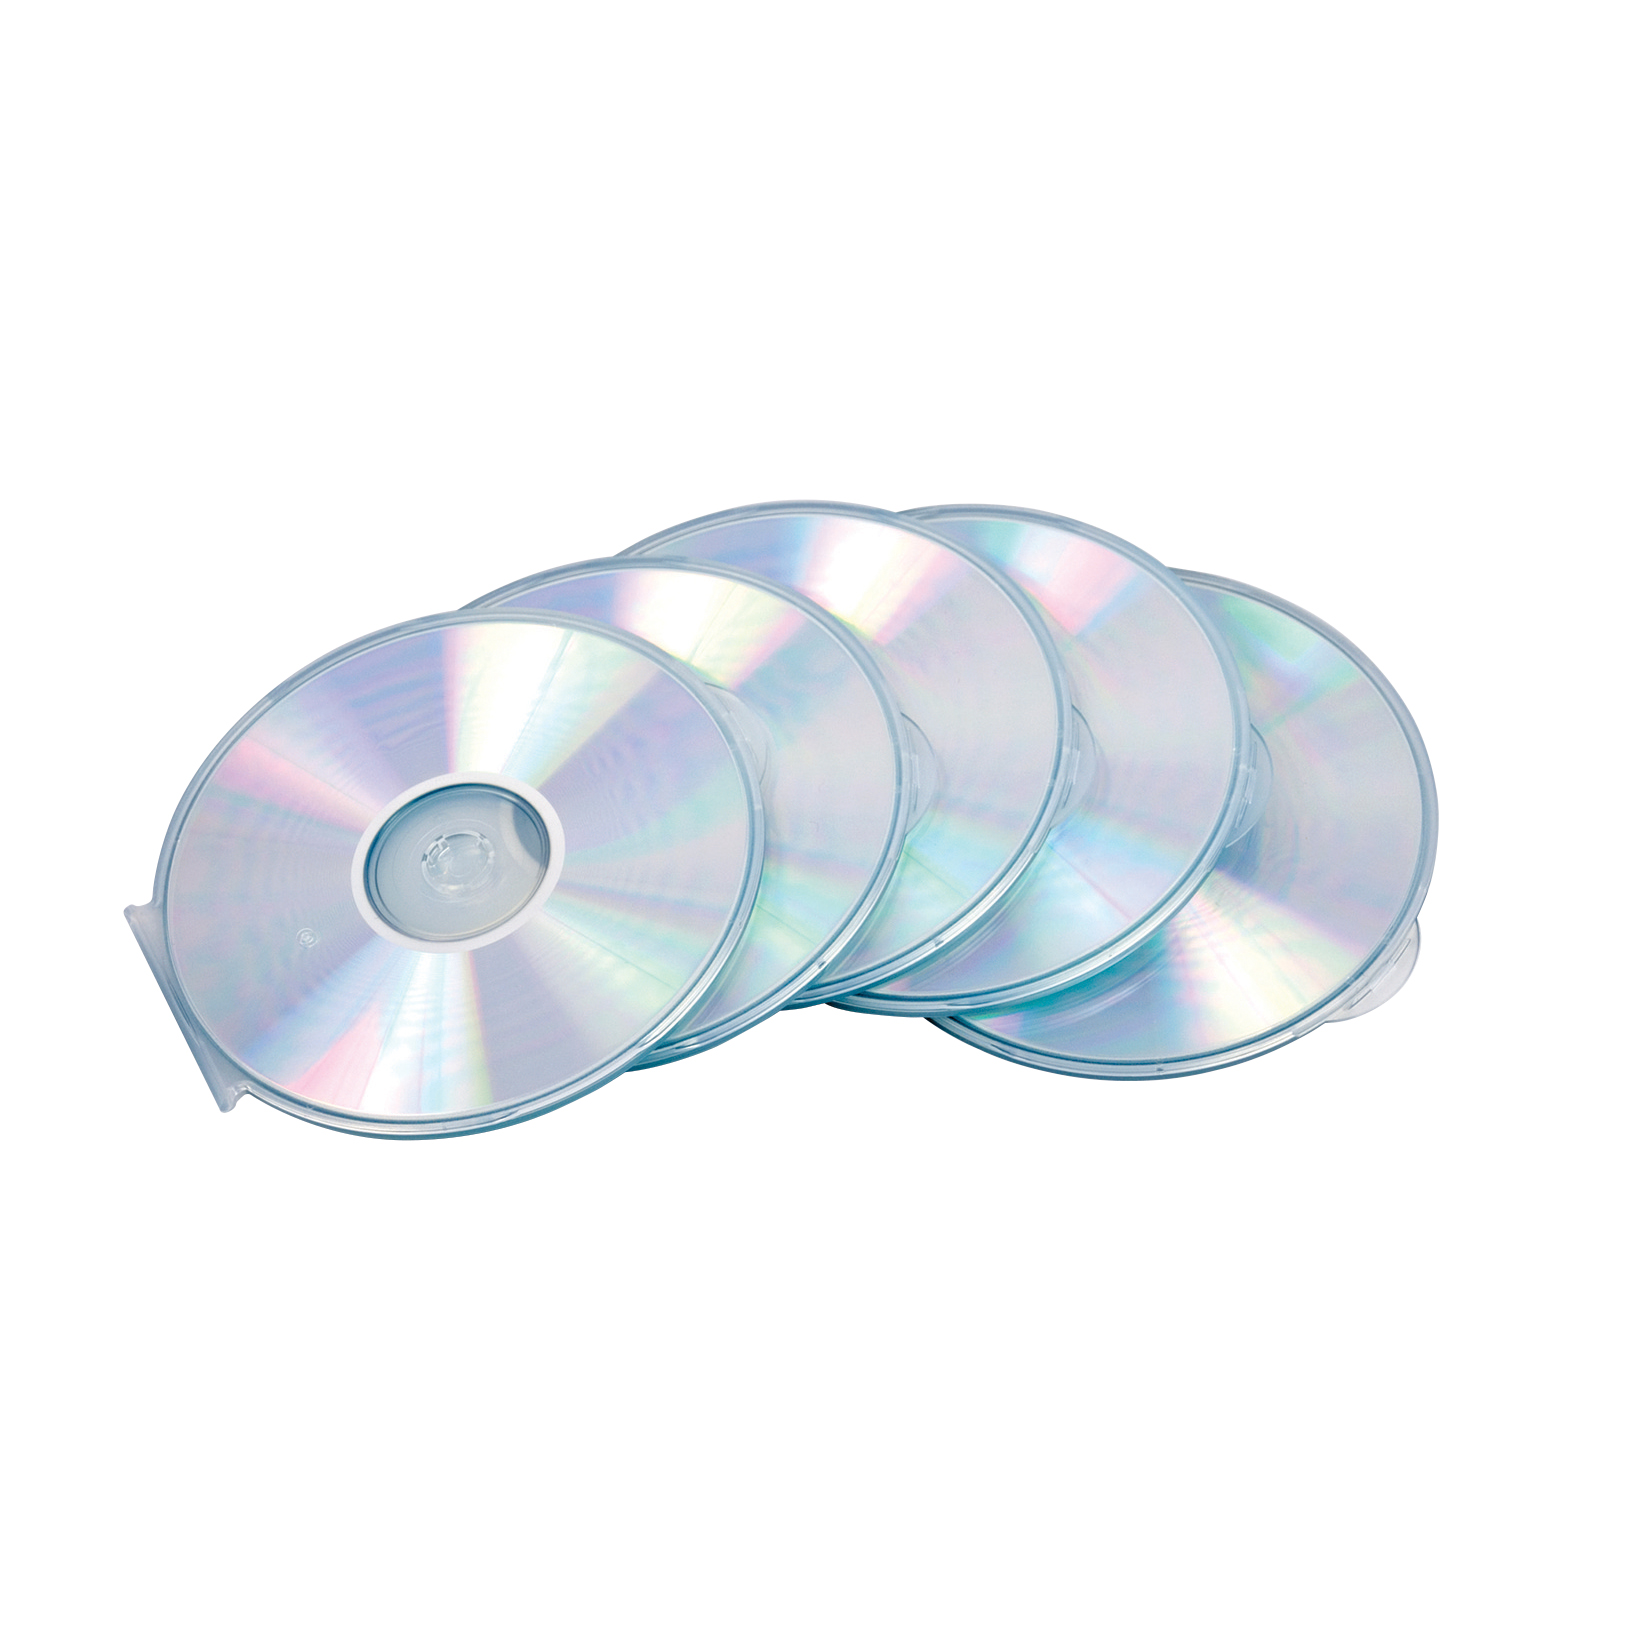 Compact disk cases Fellowes CD Cases Round Slimline Clear Ref 9834201 [Pack 5]